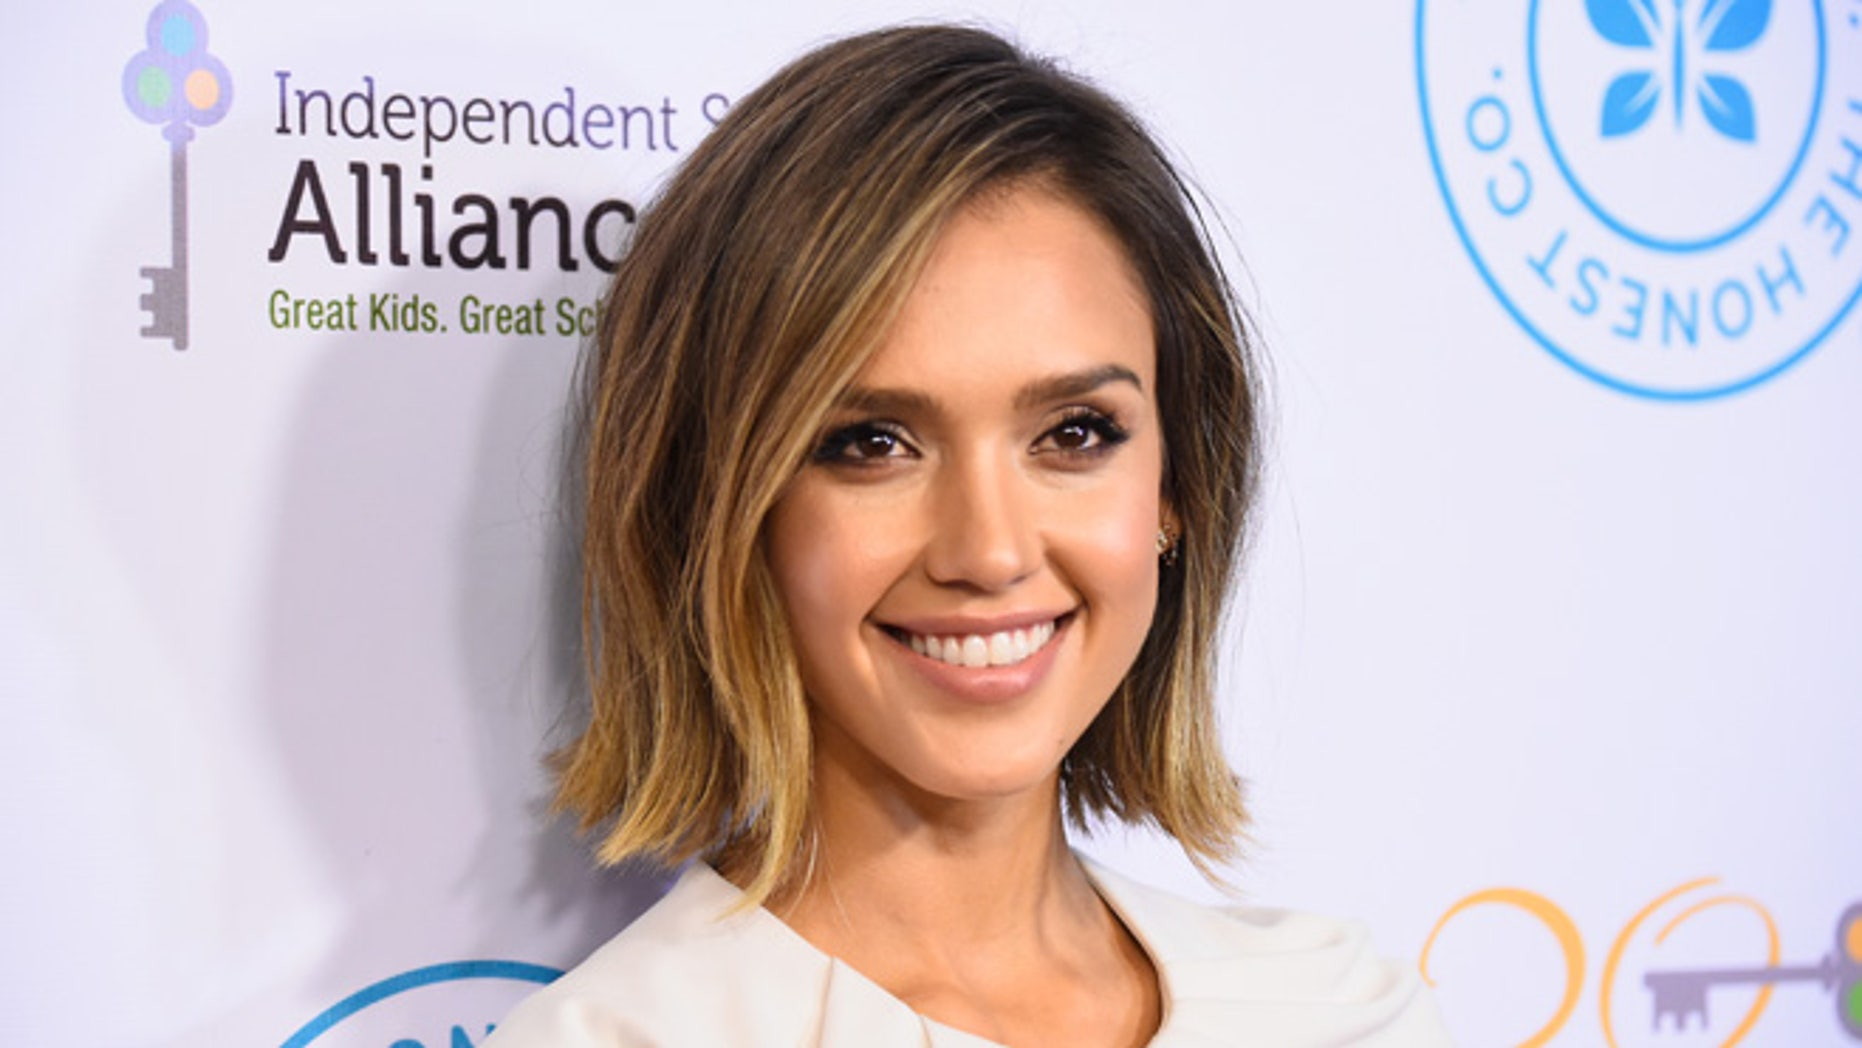 LOS ANGELES, CA - MARCH 17:  Actrees Jessica Alba  arrives at The Independent School Alliance For Minority Affairs Impact Awards Dinner - Arrivals at Four Seasons Hotel Los Angeles at Beverly Hills on March 17, 2015 in Los Angeles, California.  (Photo by Frazer Harrison/Getty Images)